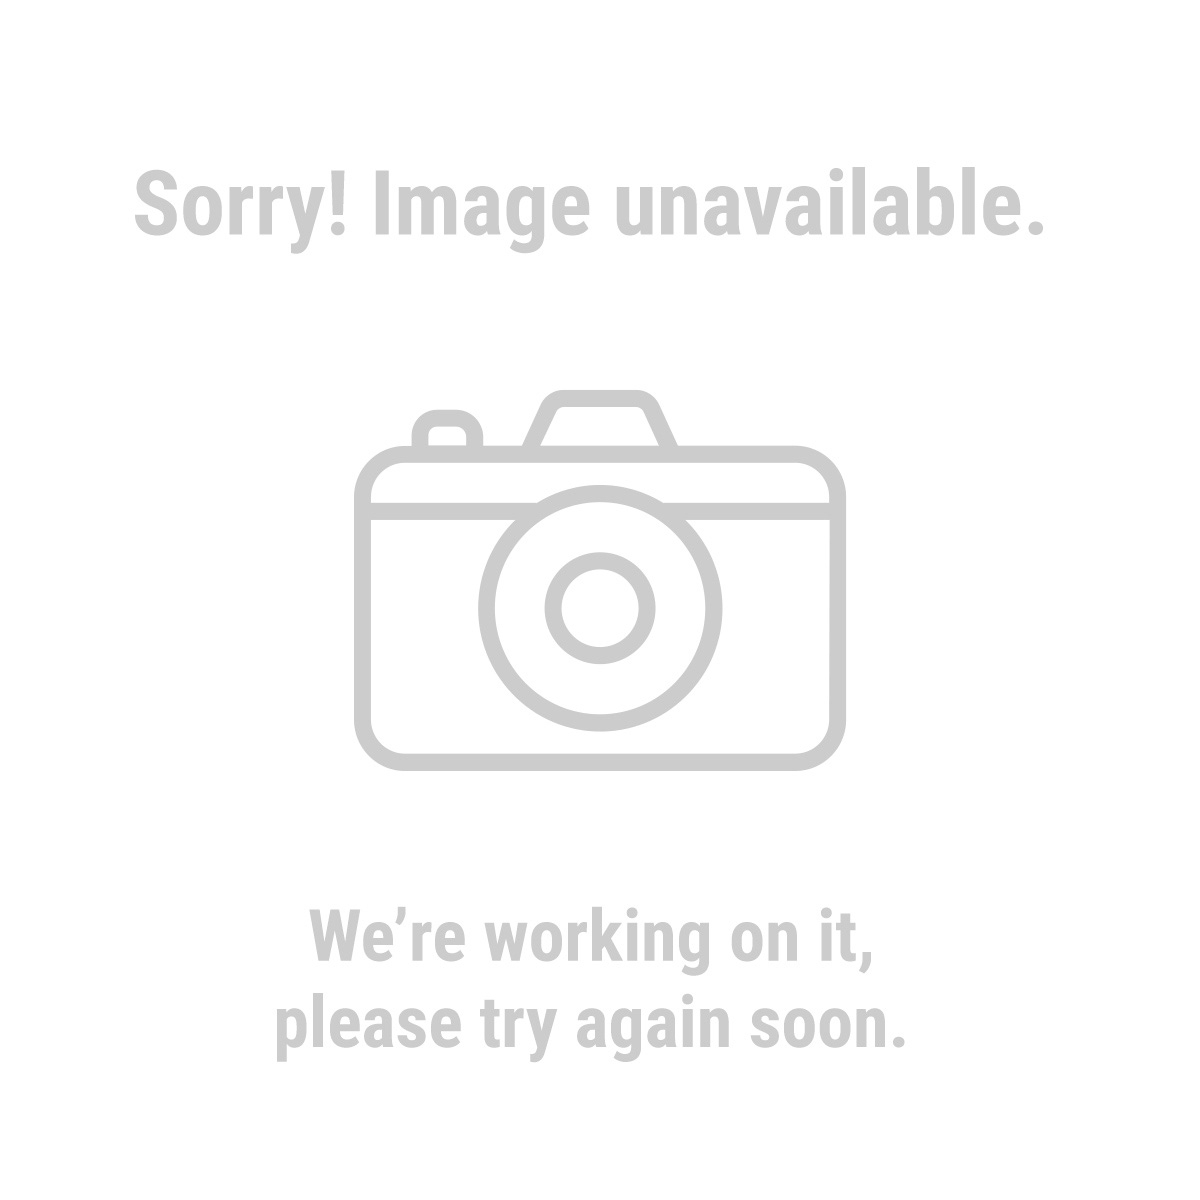 Chicago Electric Welding 61316 100 lb. Capacity Welding Cart